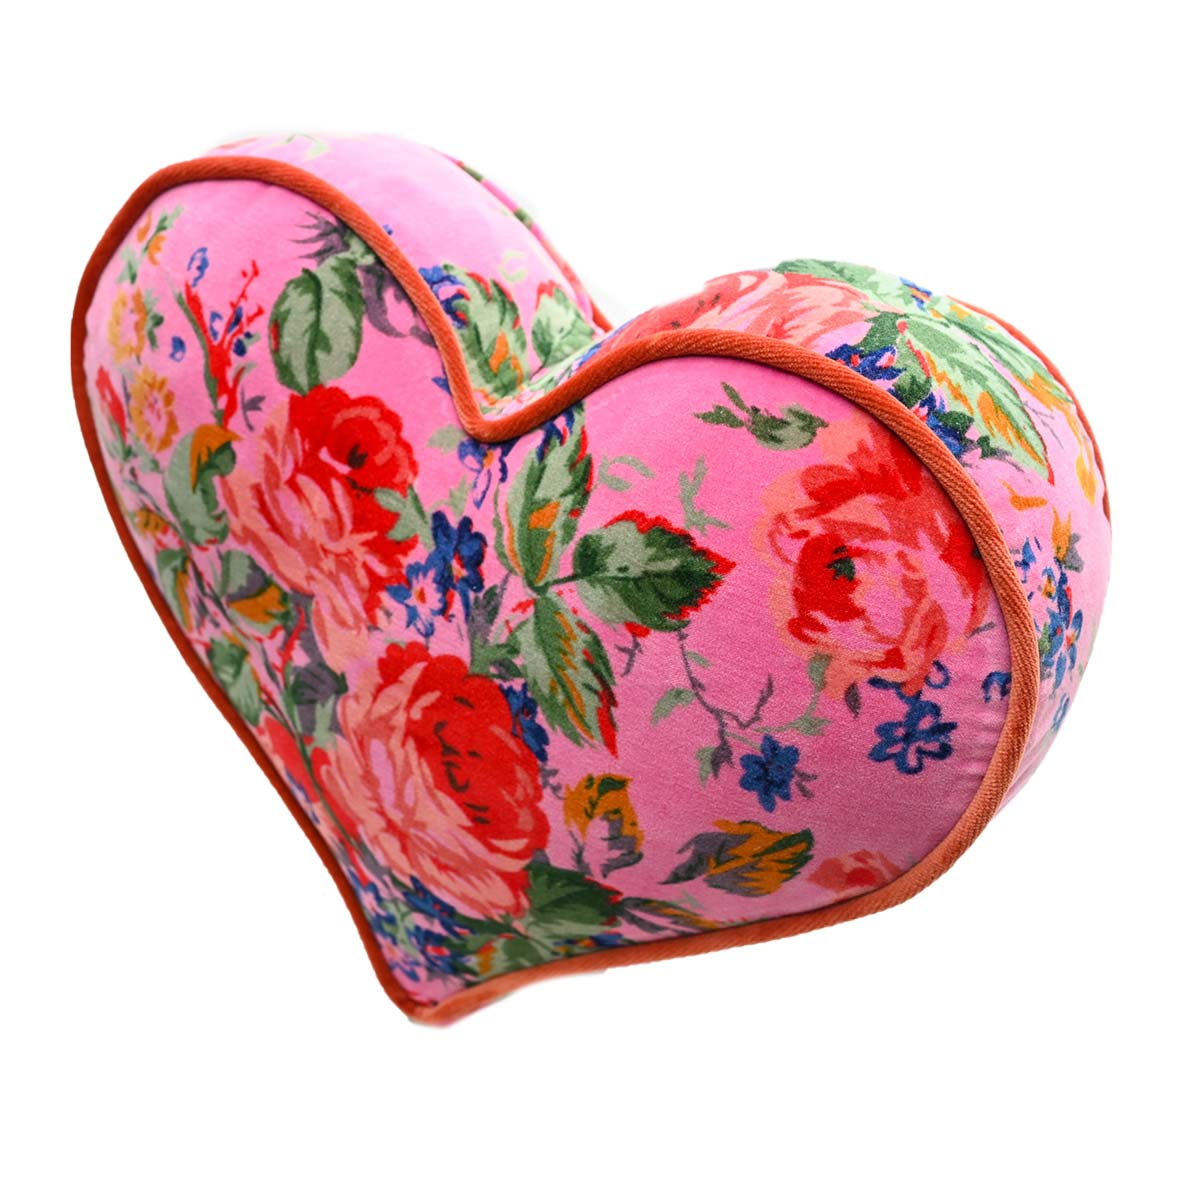 heart pillow large size roses on pink DSC 6318